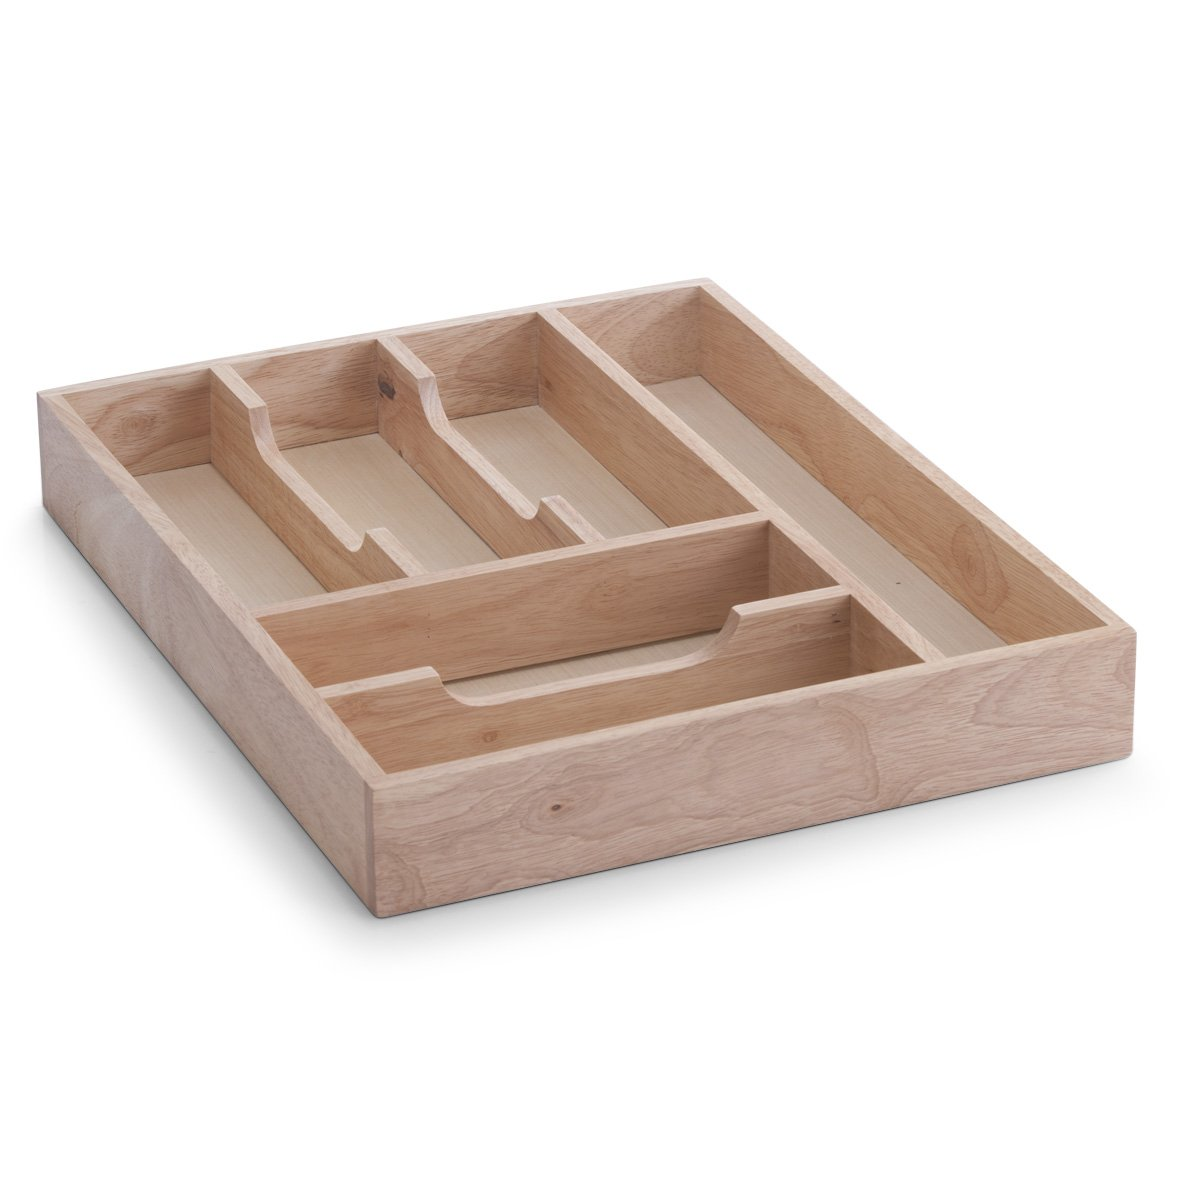 Zeller Cutlery Drawer, Wood, Multi-Colour, 34 x 43 x 6 cm 24045